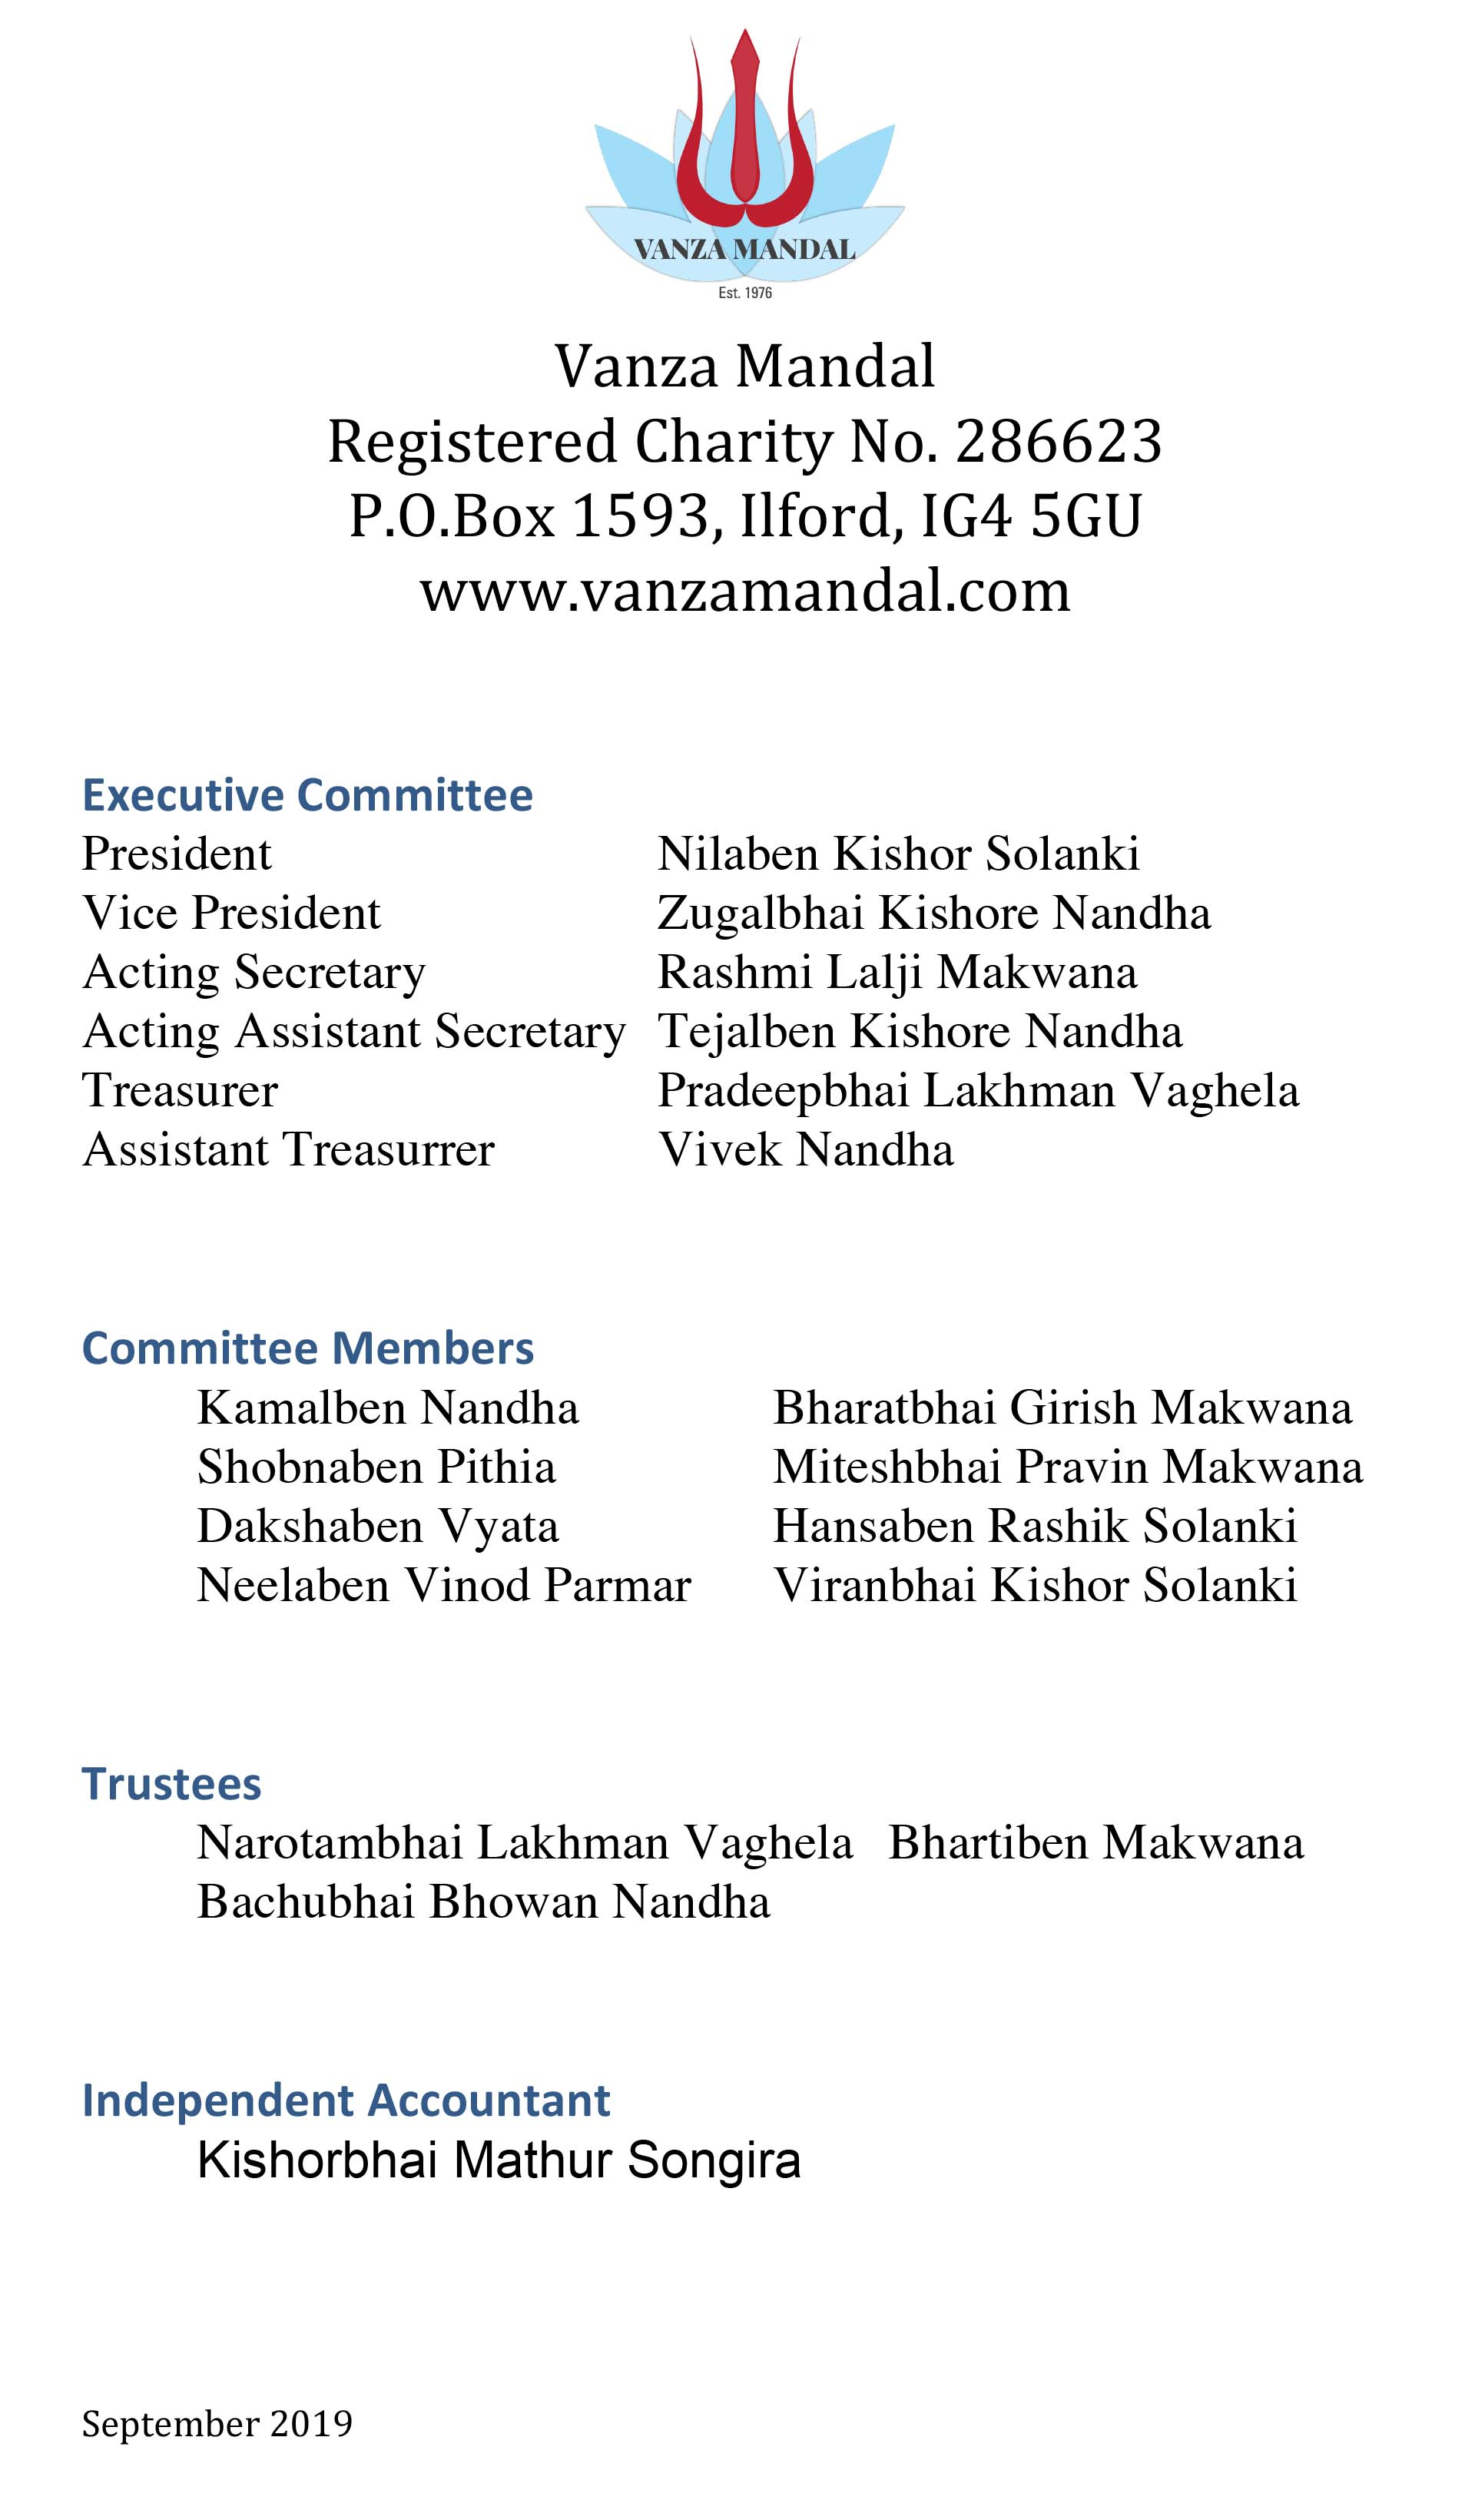 Microsoft Word - Vanza Mandal Committee members september 2019.d